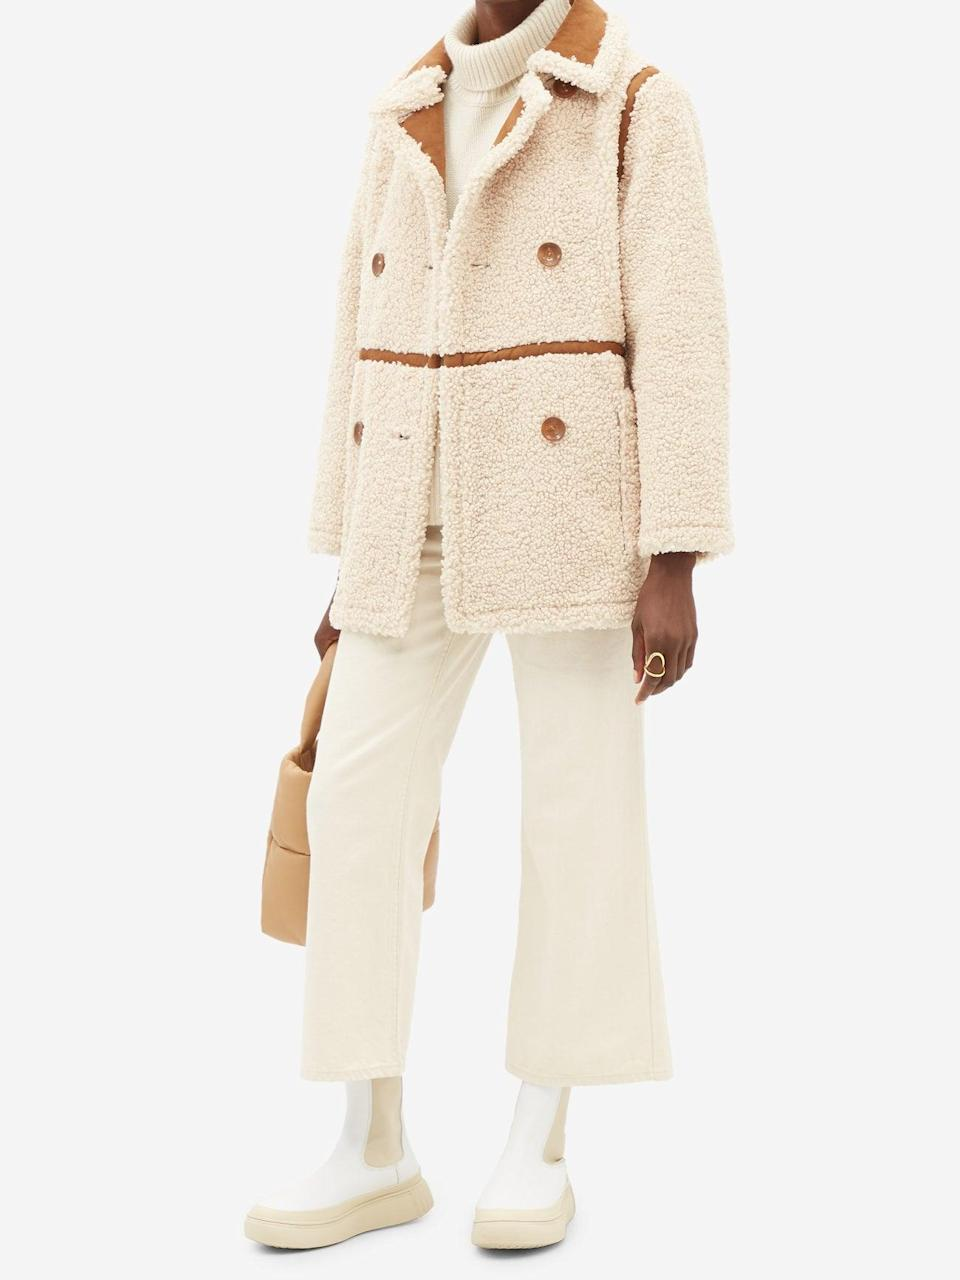 """It's entirely possible to look put-together <em>and</em> feel supremely cozy when you have this structured teddy bear coat living in your wardrobe. $450, Matches Fashion. <a href=""""https://www.matchesfashion.com/us/products/1424108"""" rel=""""nofollow noopener"""" target=""""_blank"""" data-ylk=""""slk:Get it now!"""" class=""""link rapid-noclick-resp"""">Get it now!</a>"""